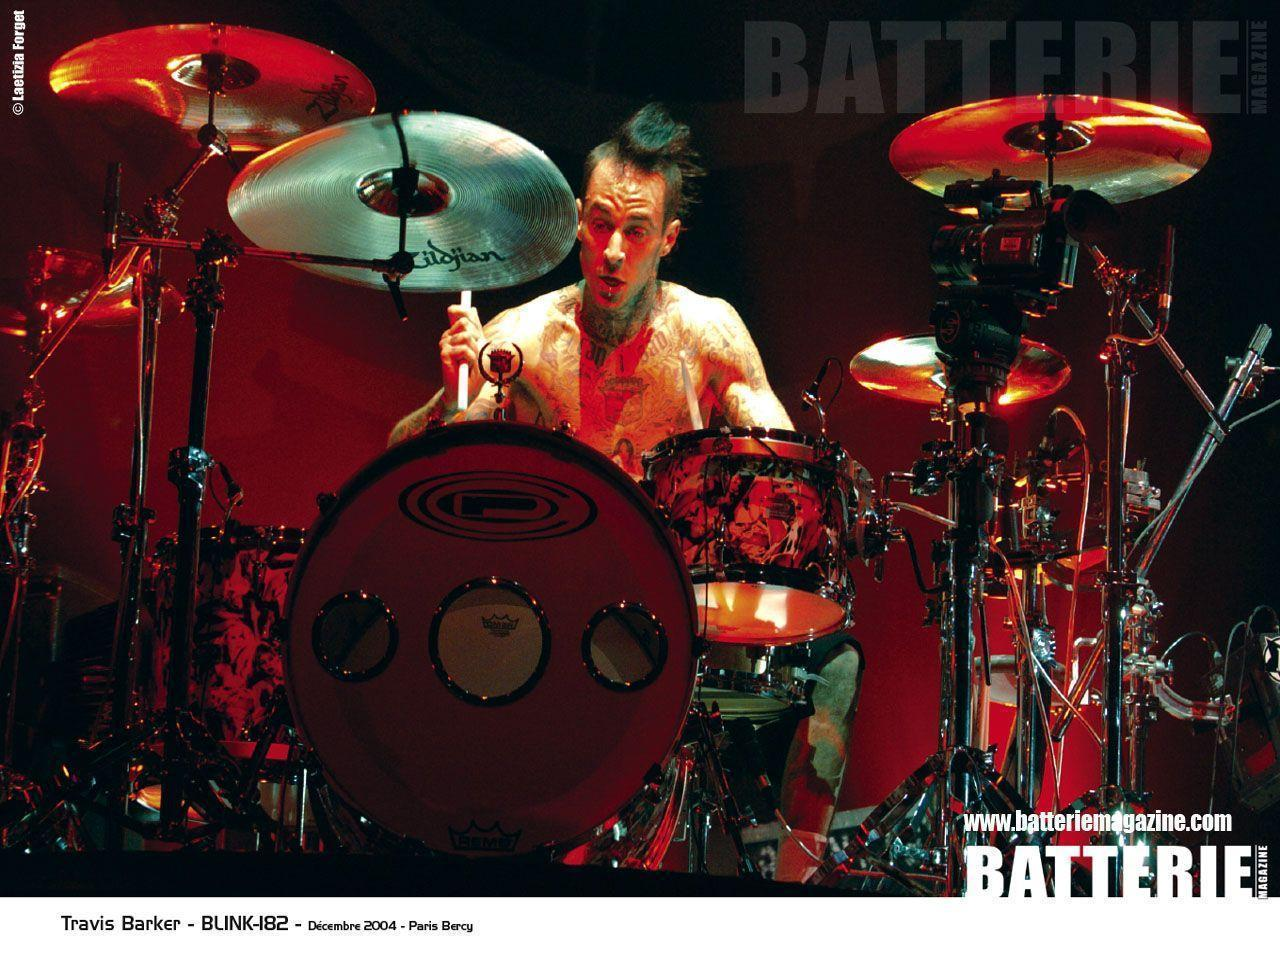 Travis Barker Goodies Batterie Magazine 1280x960 | #324437 #travis ...